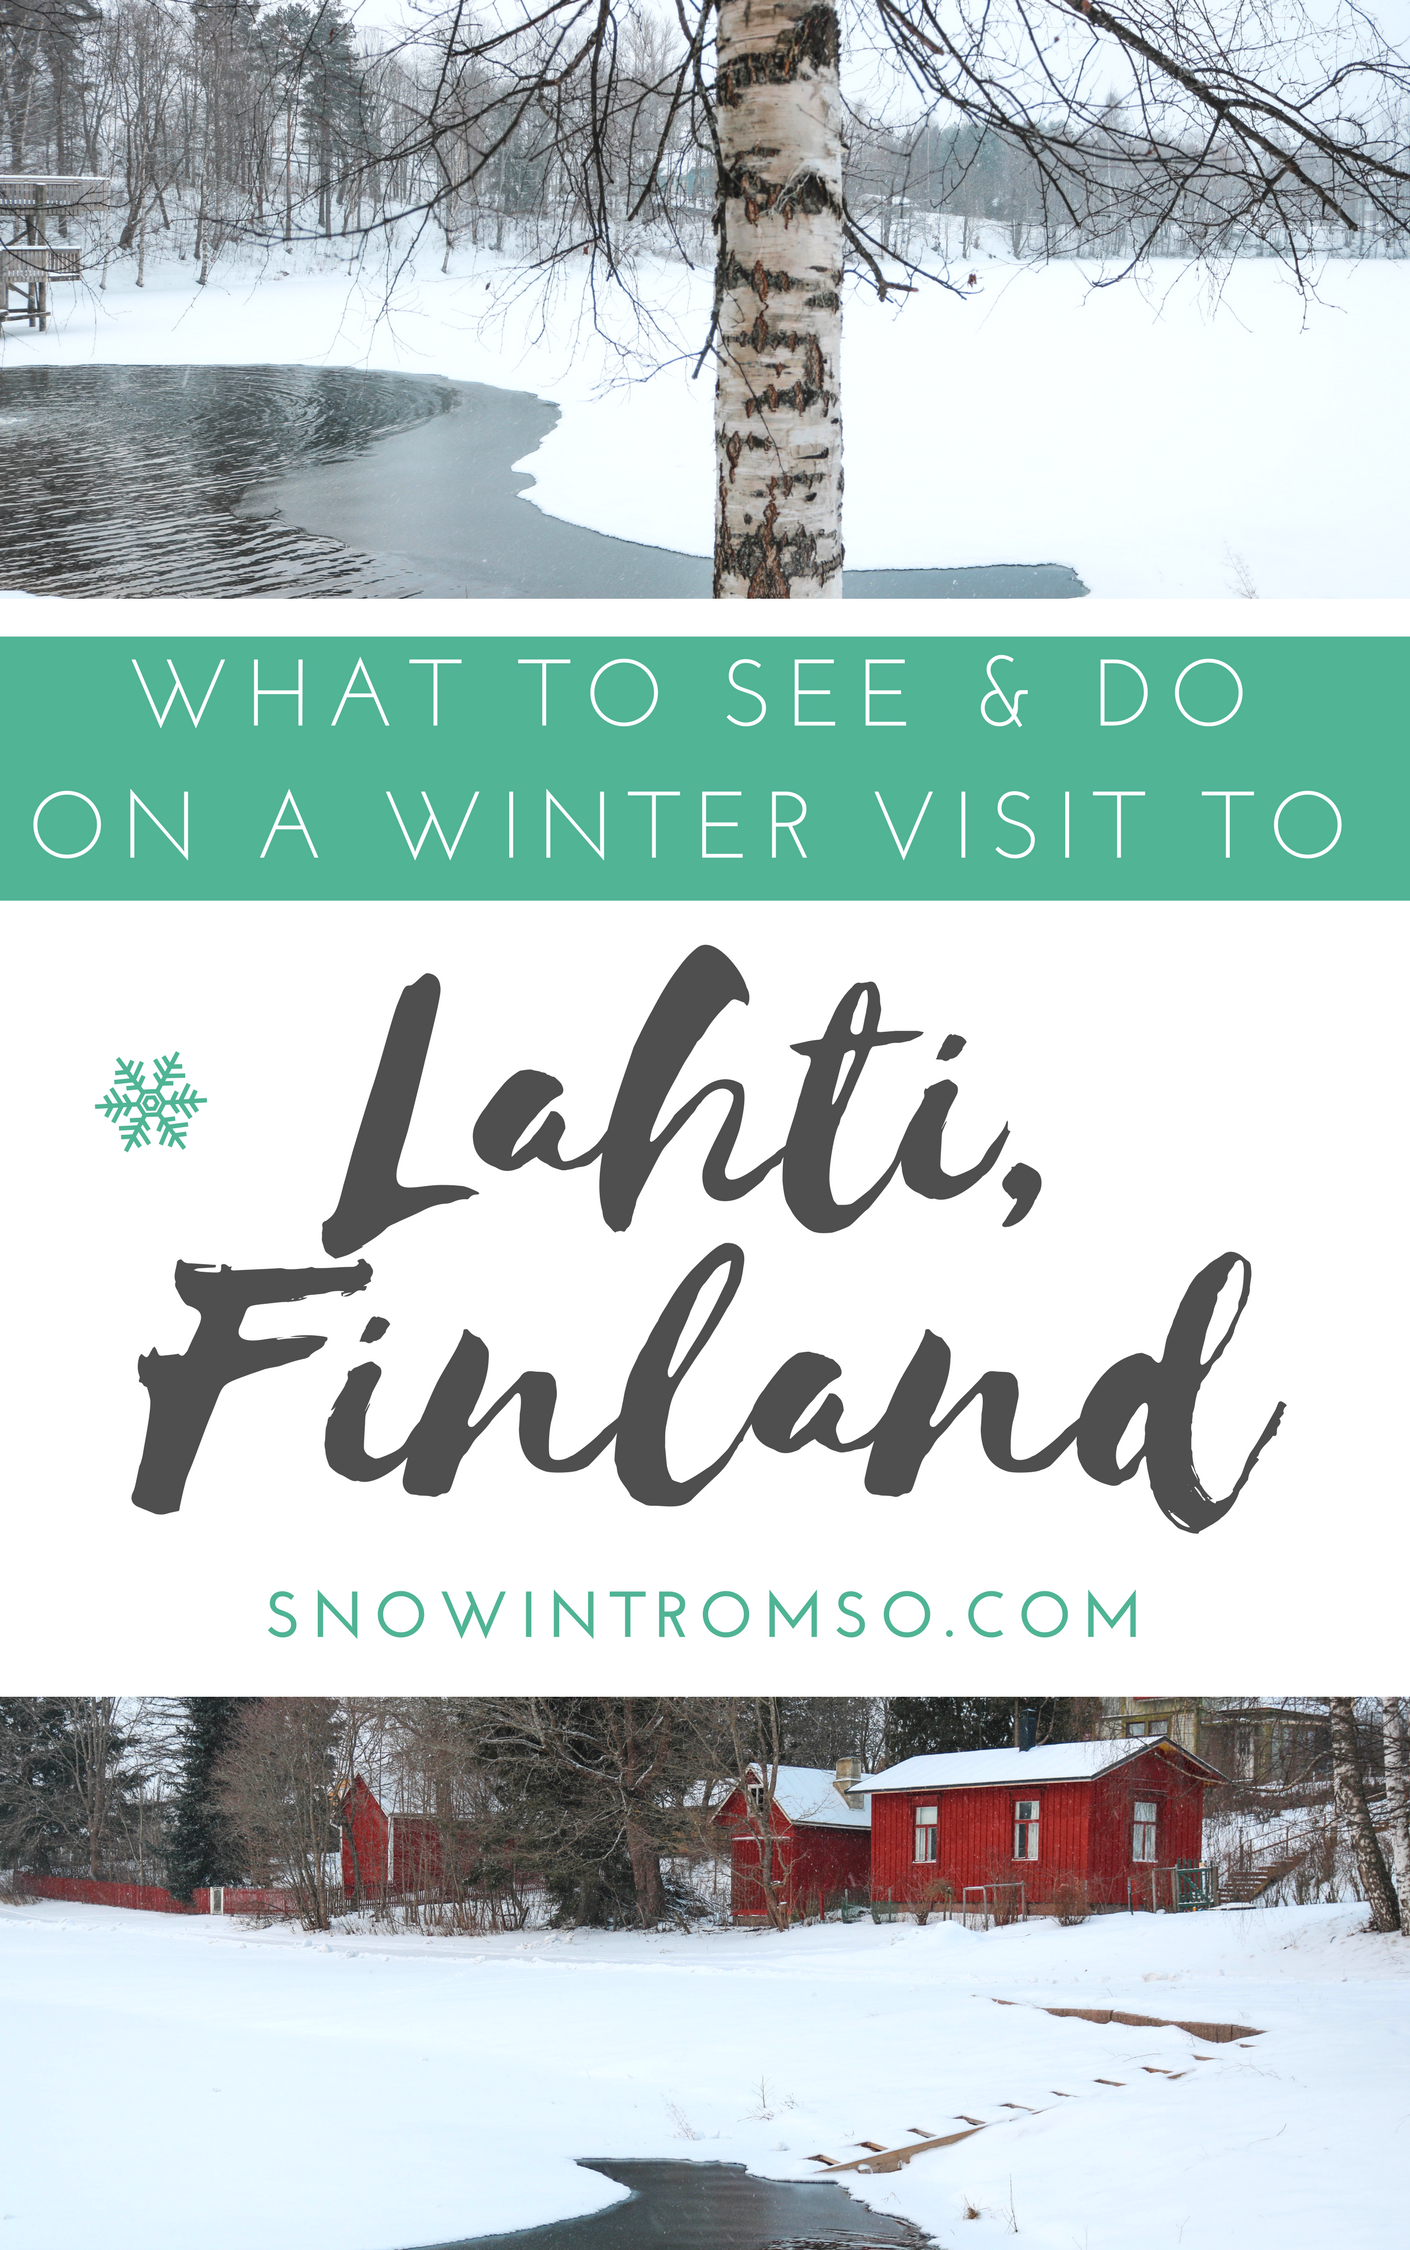 Considering a winter visit to Lahti? Here are 12 things you should see and do while you're there!